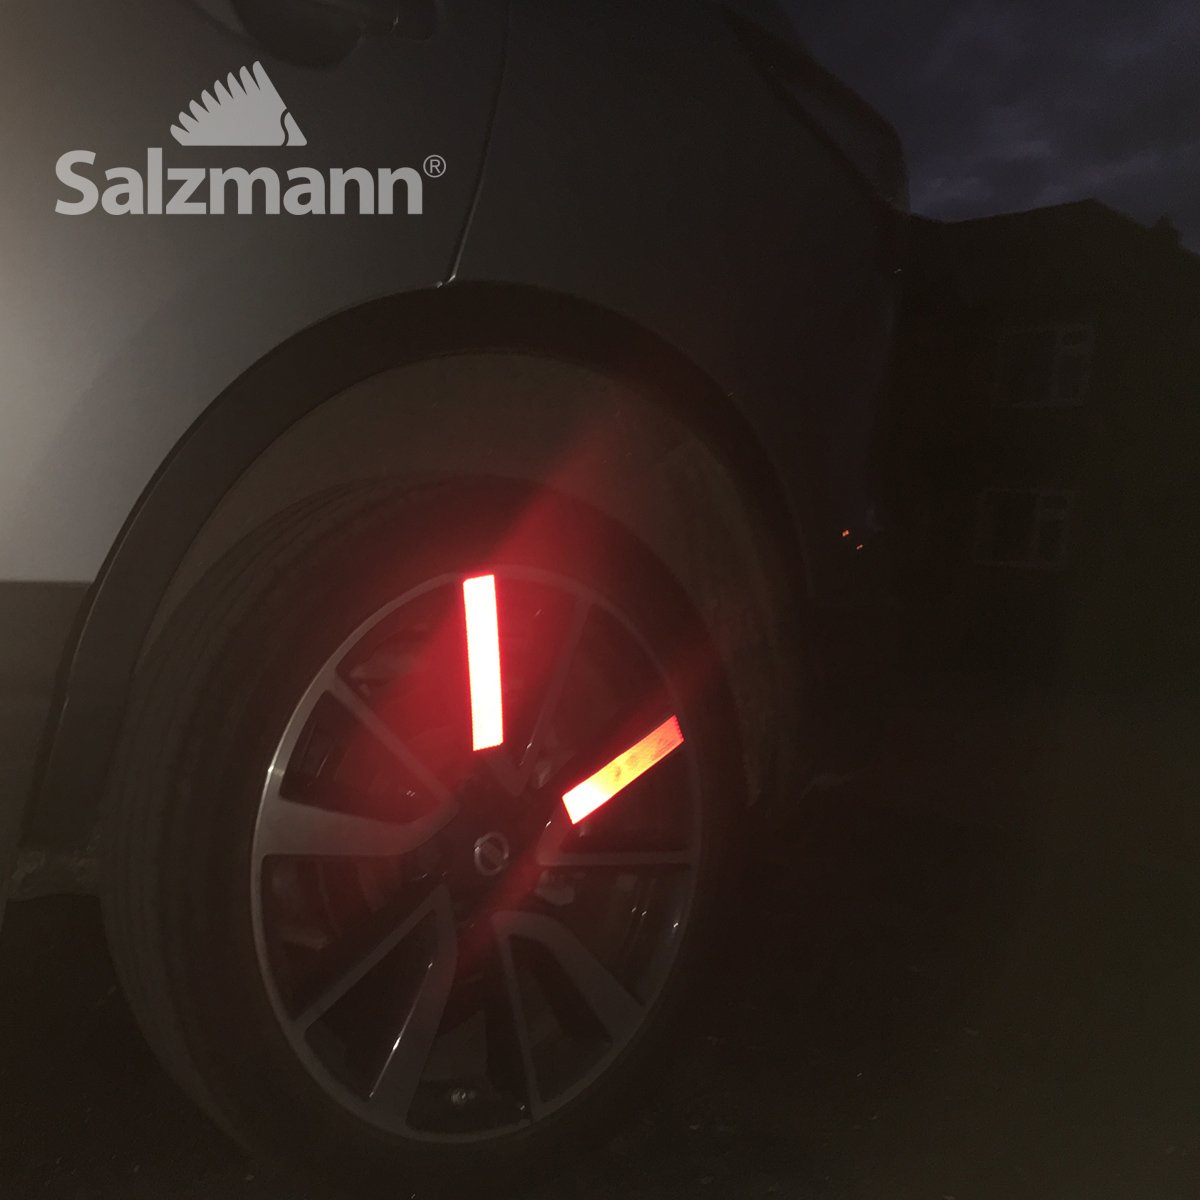 Waterproof Made with 3M Diamond Grade Pack of 4 All-Weather Reflective Stickers Salzmann Reflective Diamond Grade Sticker